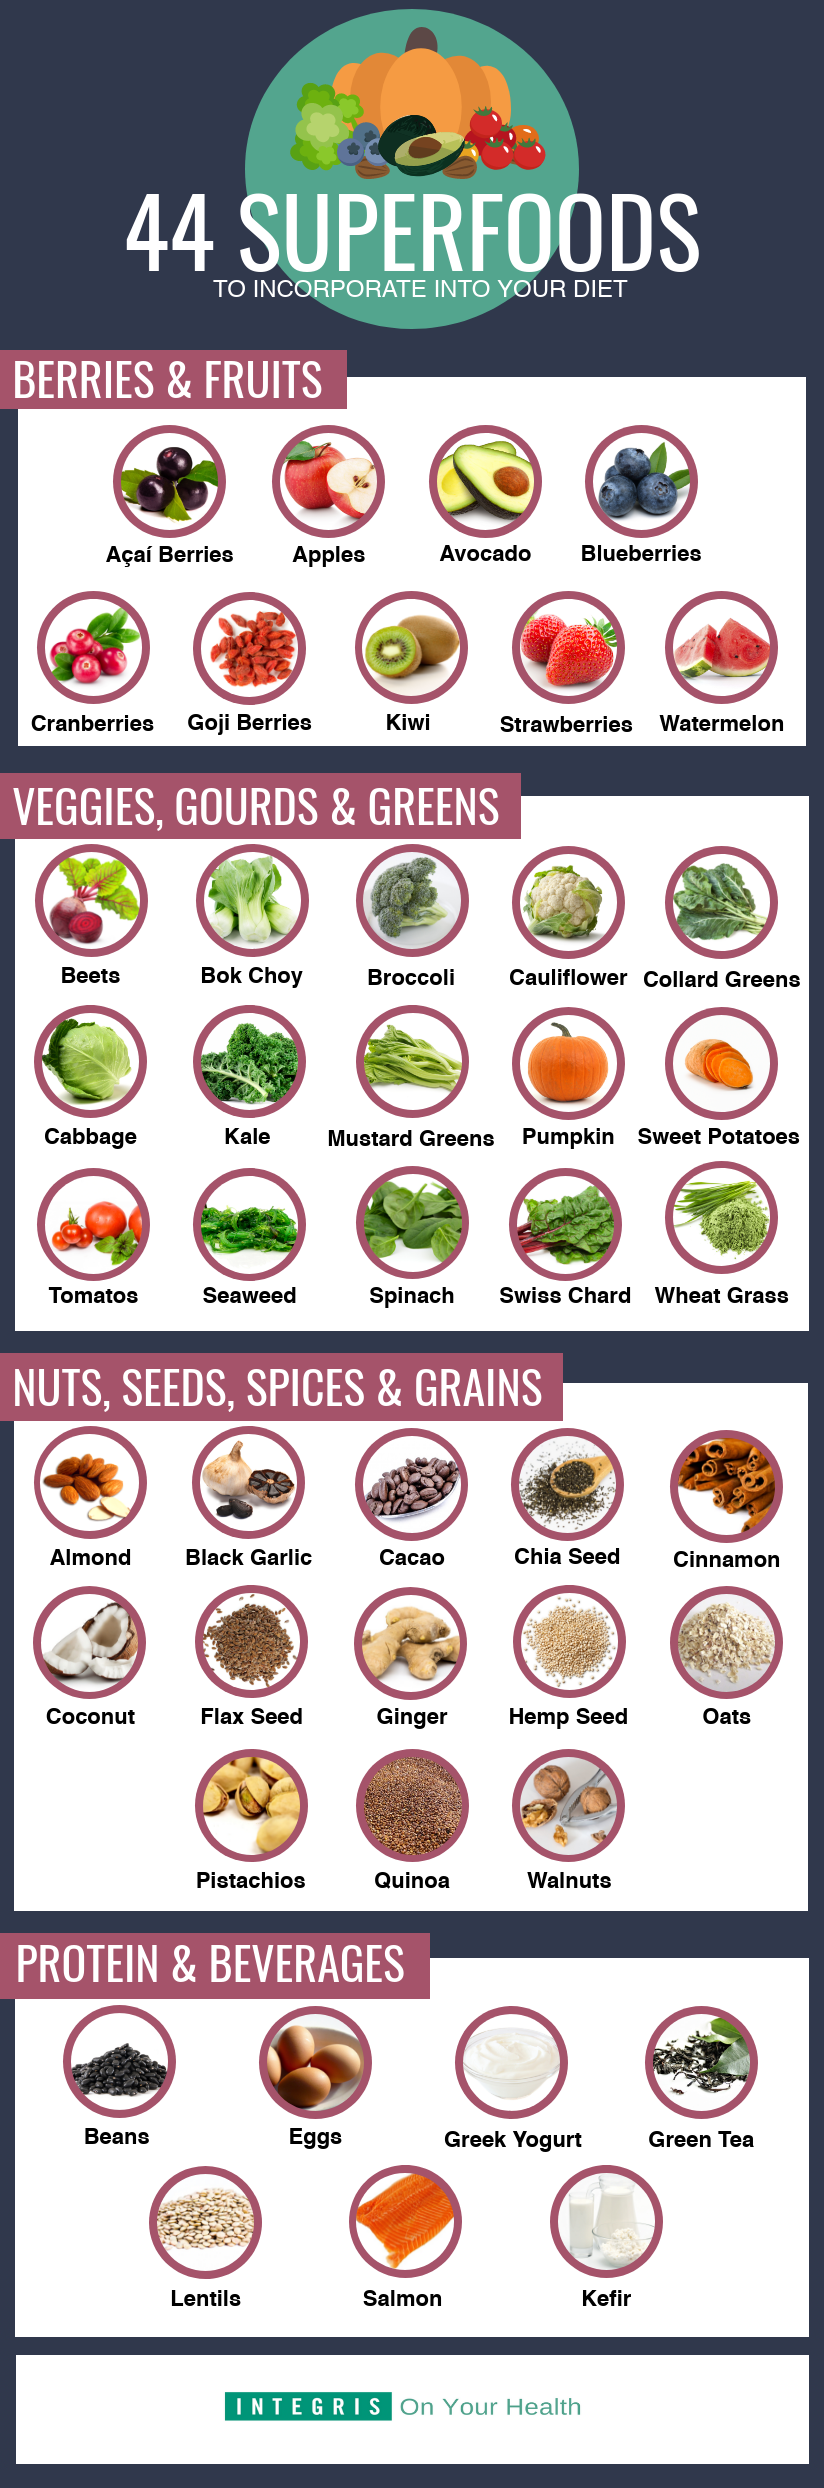 superfoods infographic